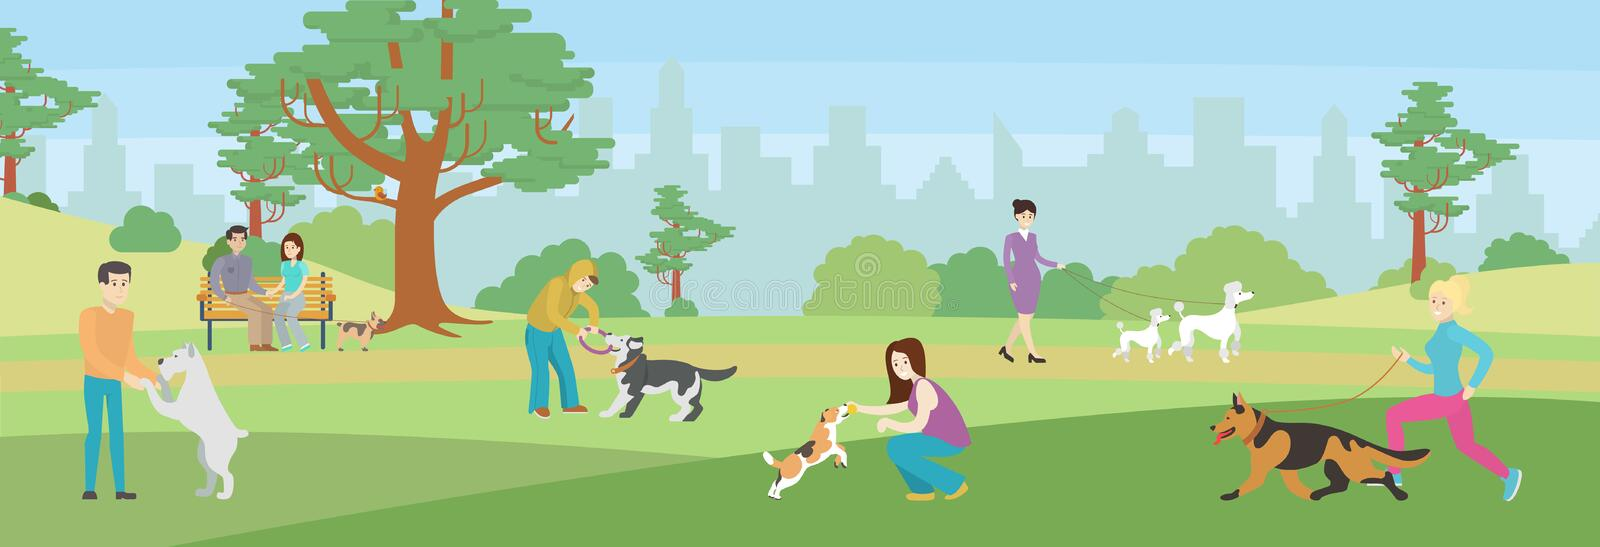 Walking dogs in park. People take care of their dogs. Beautiful green park vector illustration